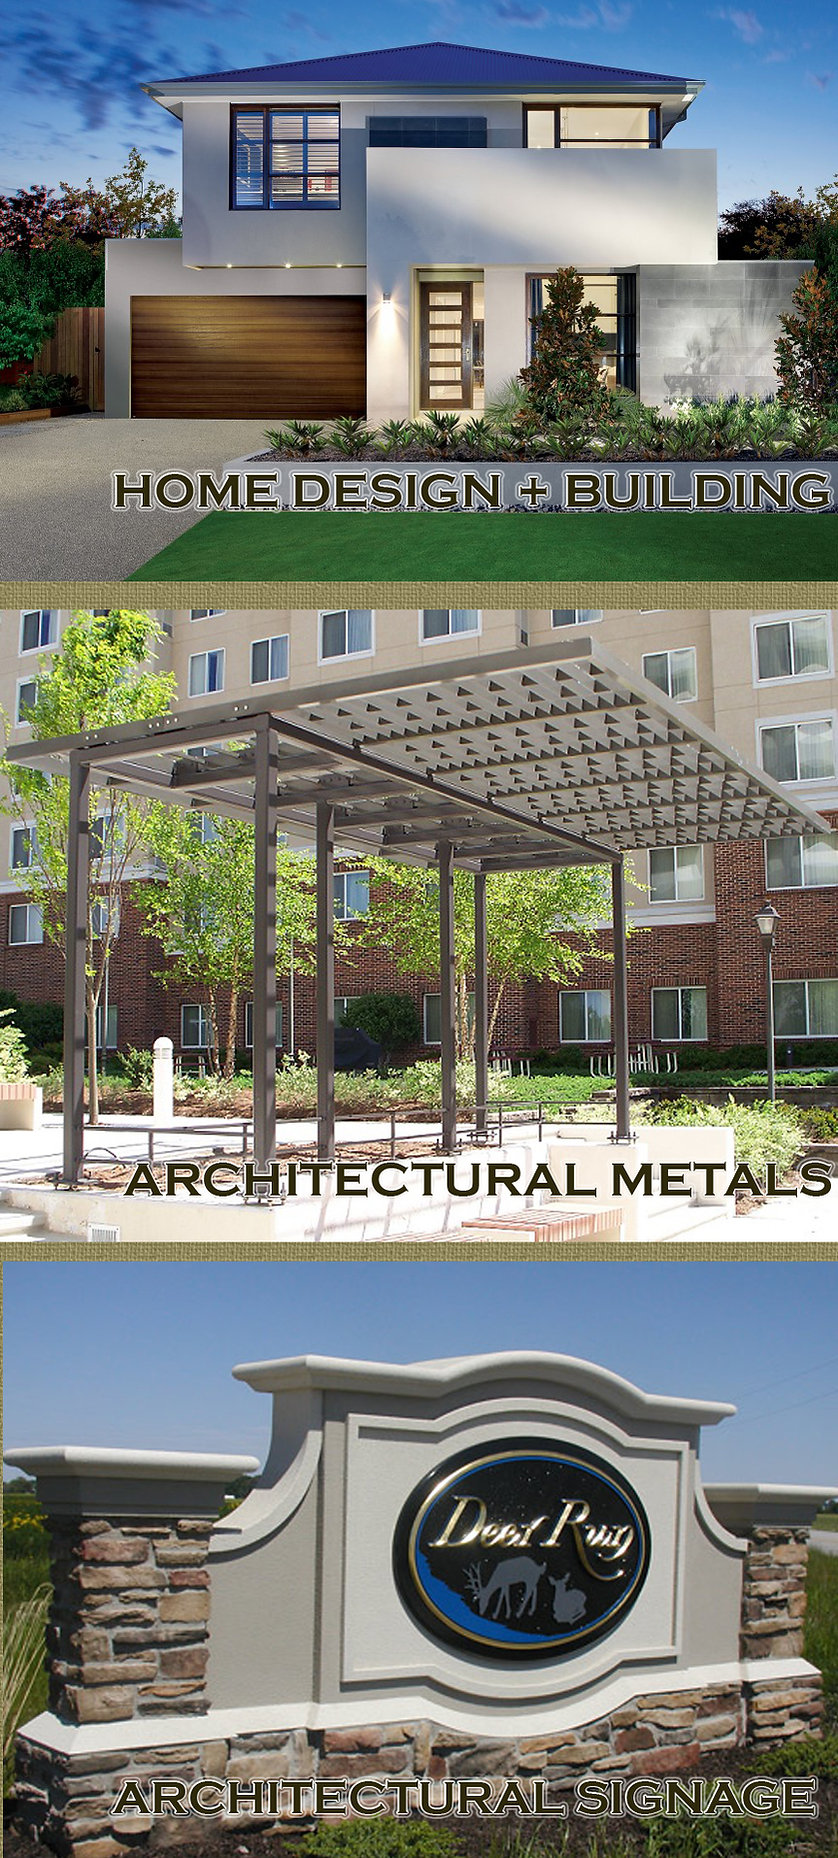 Architectural metals, architectural signage, home desig-build architechconcepts.com